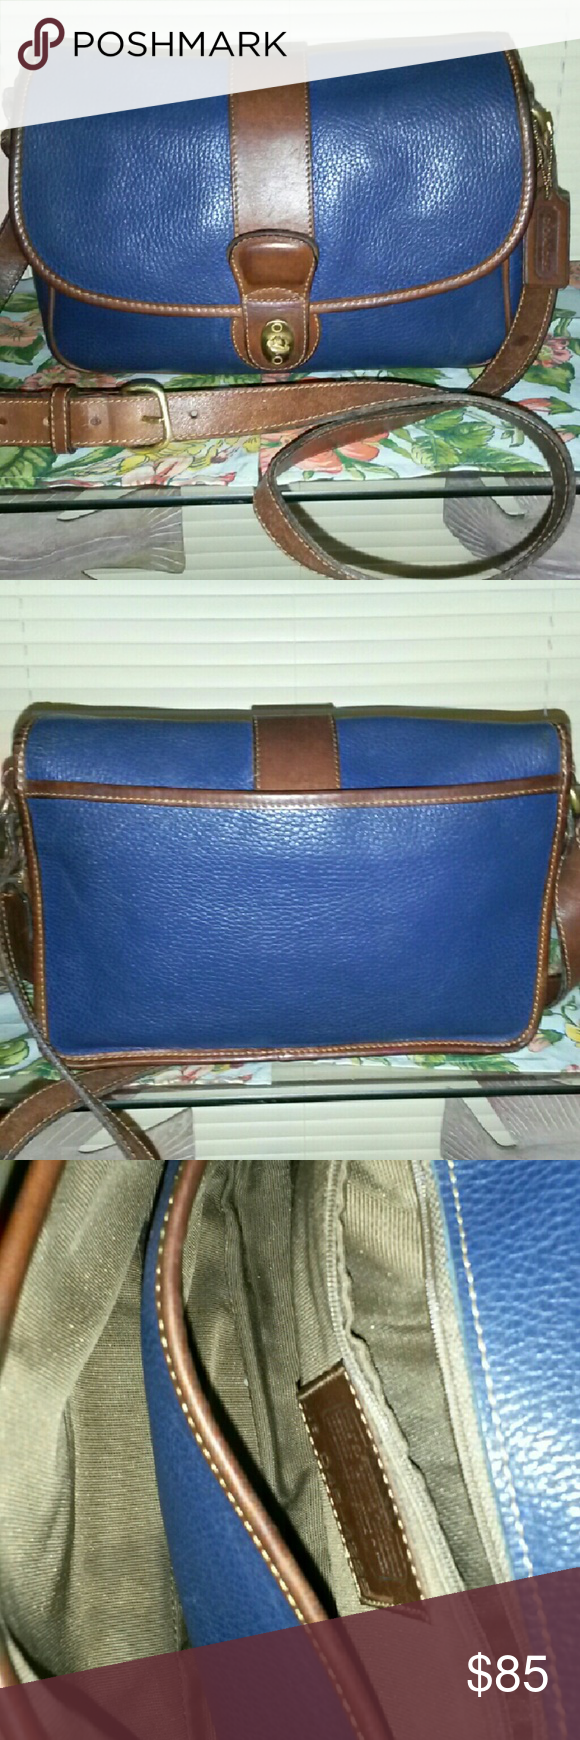 RARE*COACH VINTAGE SHERIDAN GLENWOOD Here we have a rare find. Called a Sheridan Gkenwood in rare Navy Blue! Made in 1994 this Vintage Beauty has held up well for her 23 years of age!  No scuffs to piping. Body luxurious pebbled leather with no signs of damage. Great Bright Navy Blue in color! Vintage Coach Sheridan Glennwood Bag 4225, People call her /Hippie Leather Messenger Hipster Brief Boho Retro Square Crossbody Satchel Coach Bags Crossbody Bags